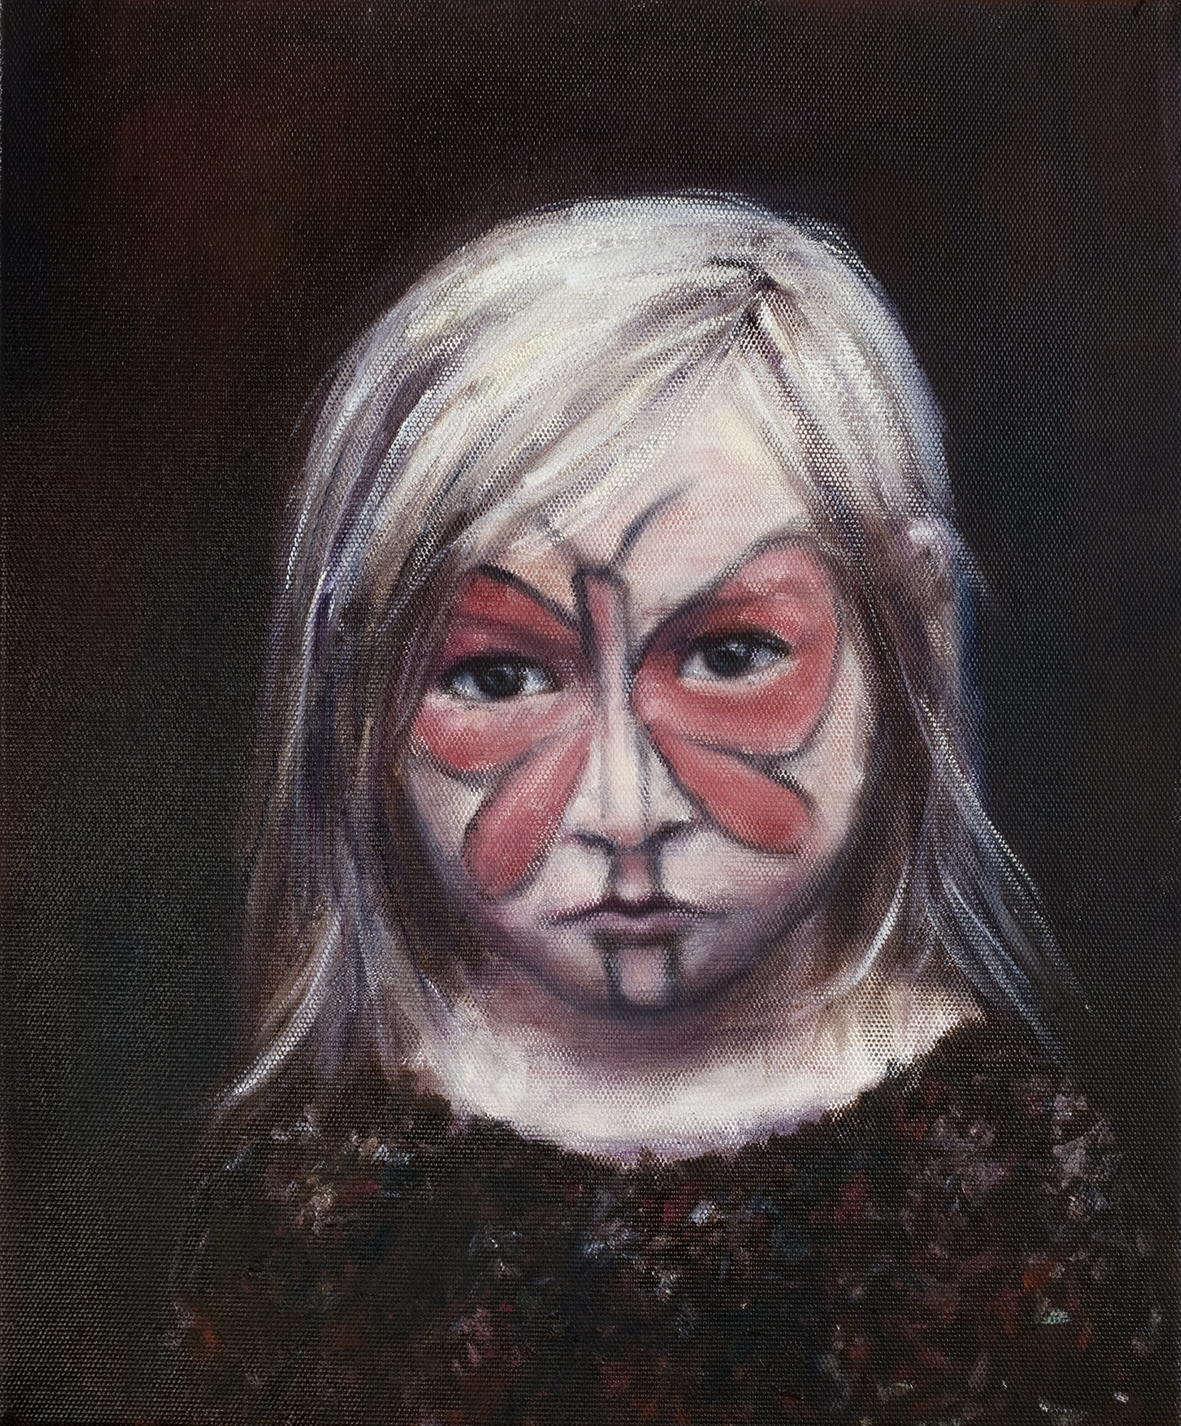 Girl with face painting  Oil on canvas 46x38 cm, 2008